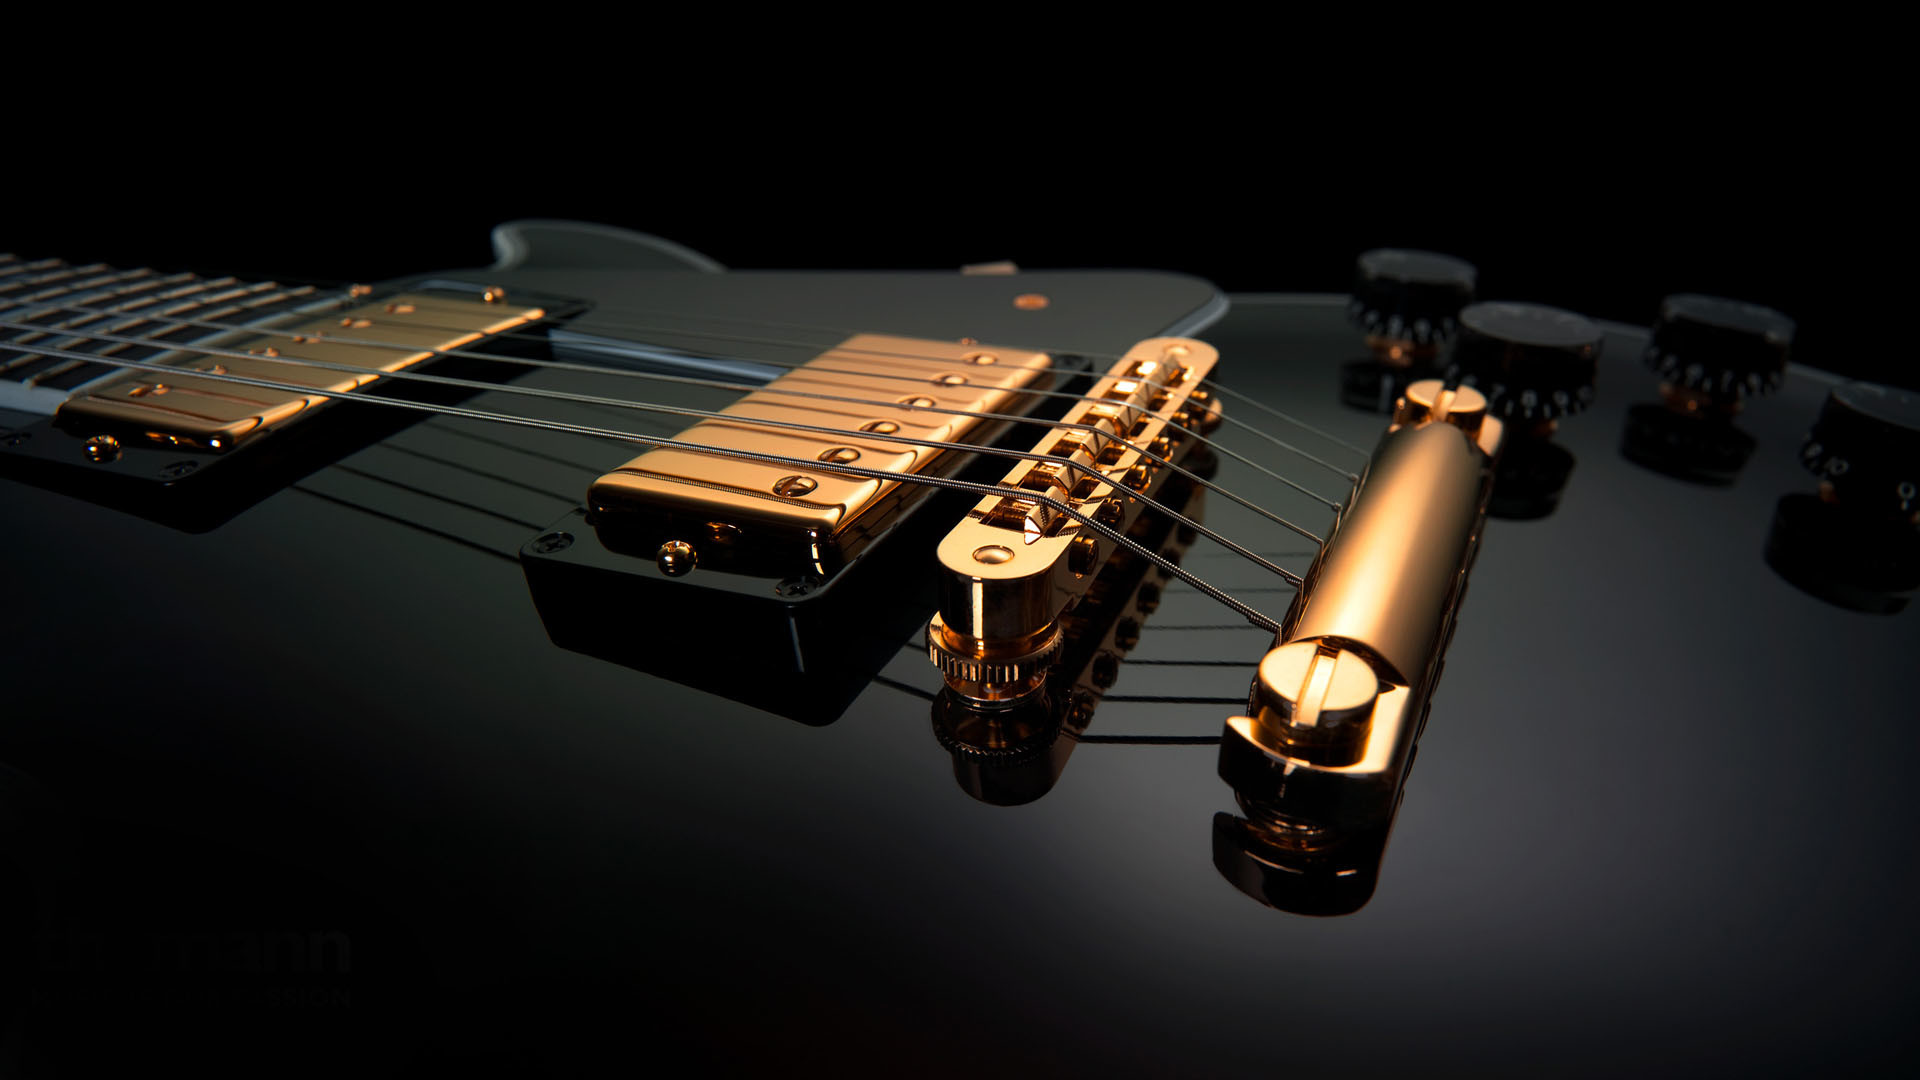 1920x1080 Gibson Guitar Wallpapers 7826 Hd Wallpapers in Music - Imagesci.com